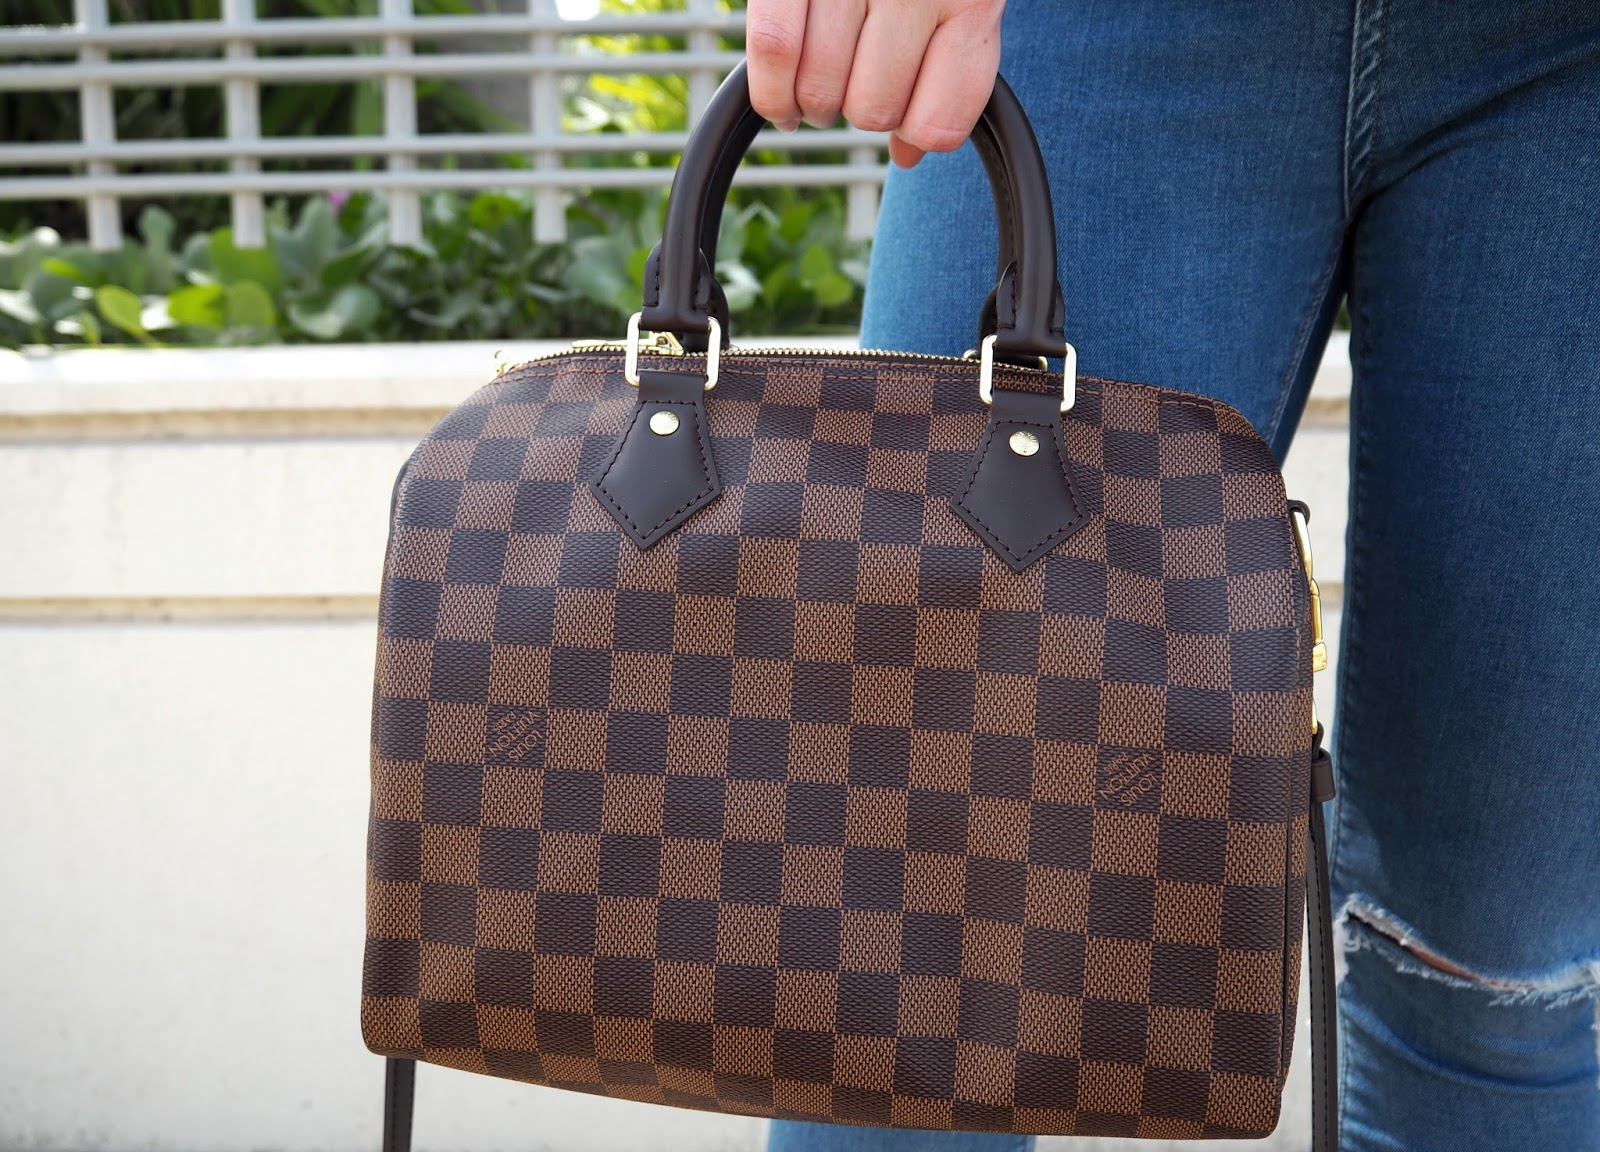 Louis Vuitton Speedy Bandouliere 25 Review & Outfit Shots